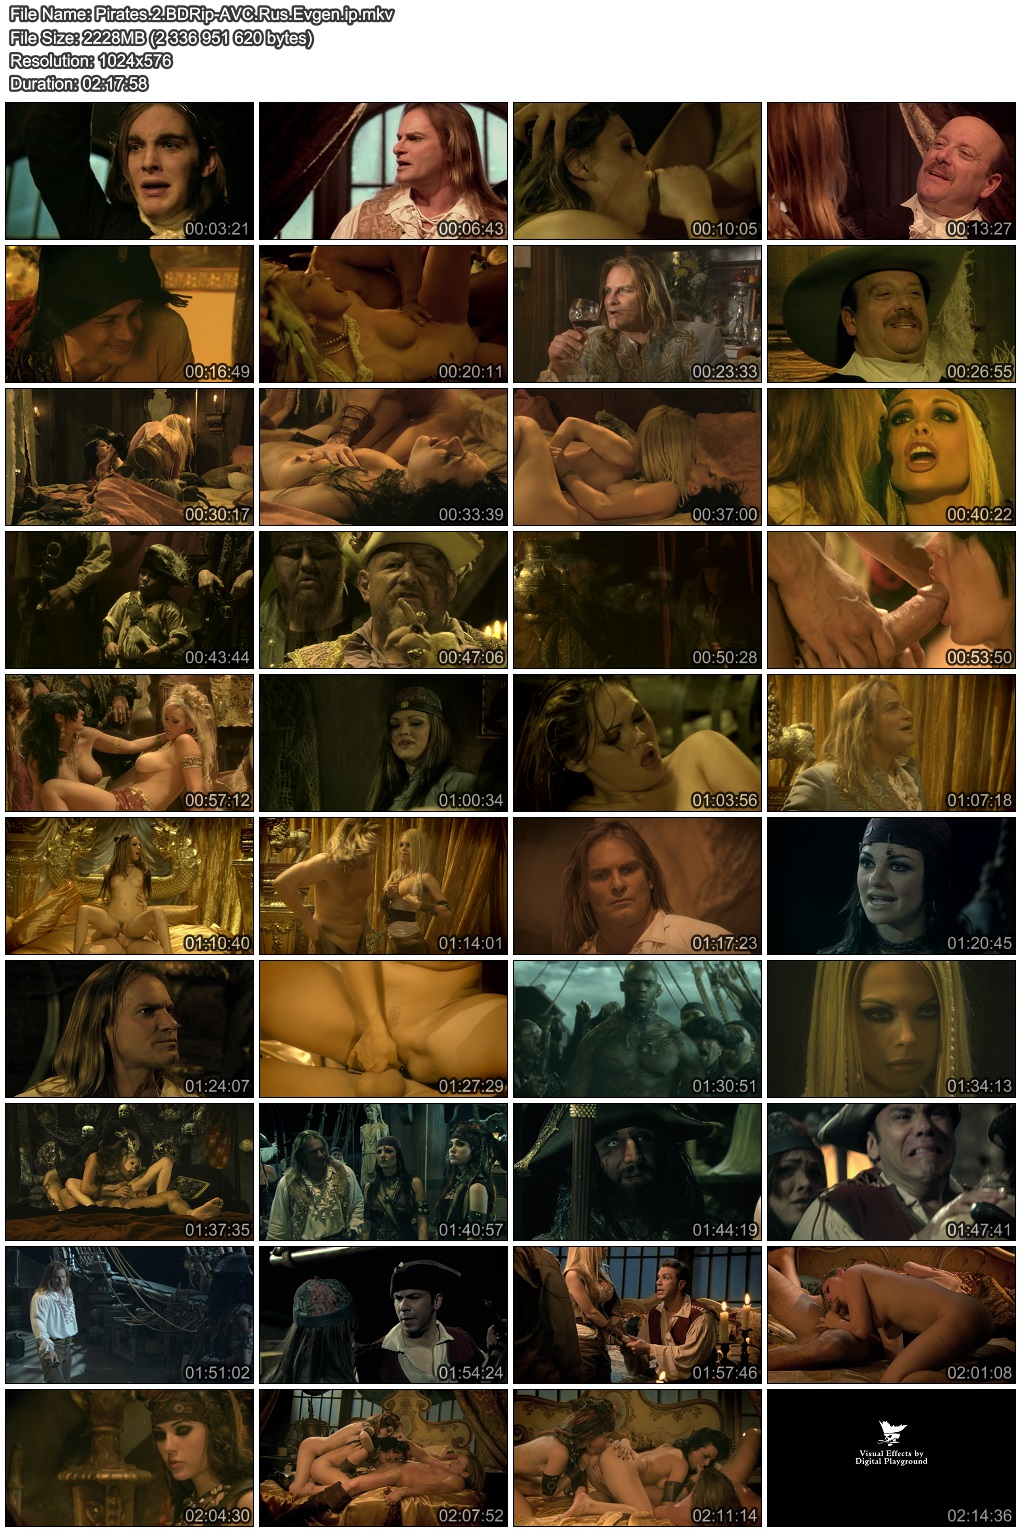 Pirate sex scene images sexual clips